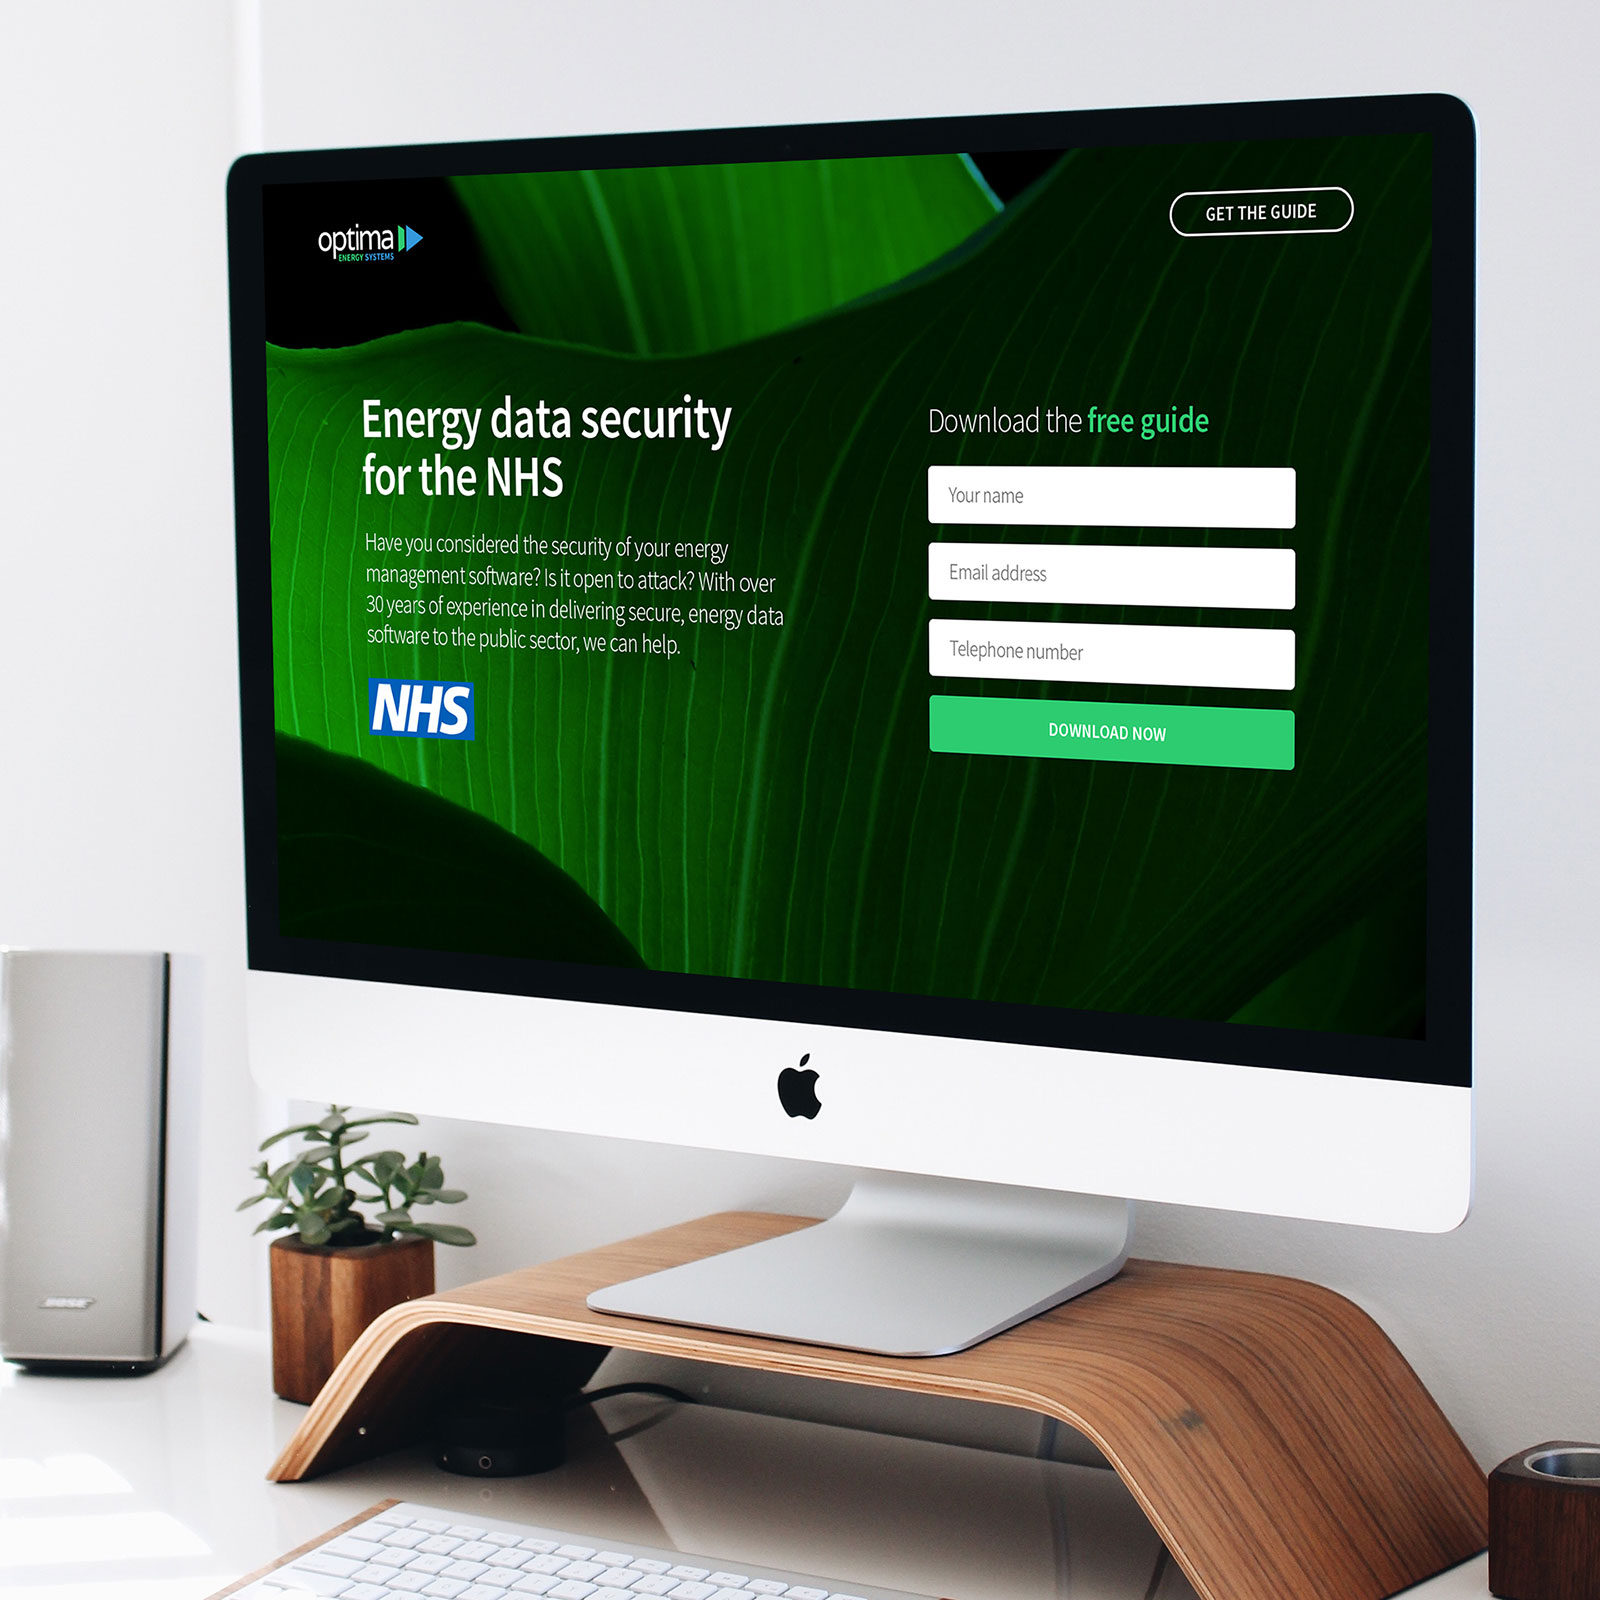 Landing page for energy data security software by Content Coms